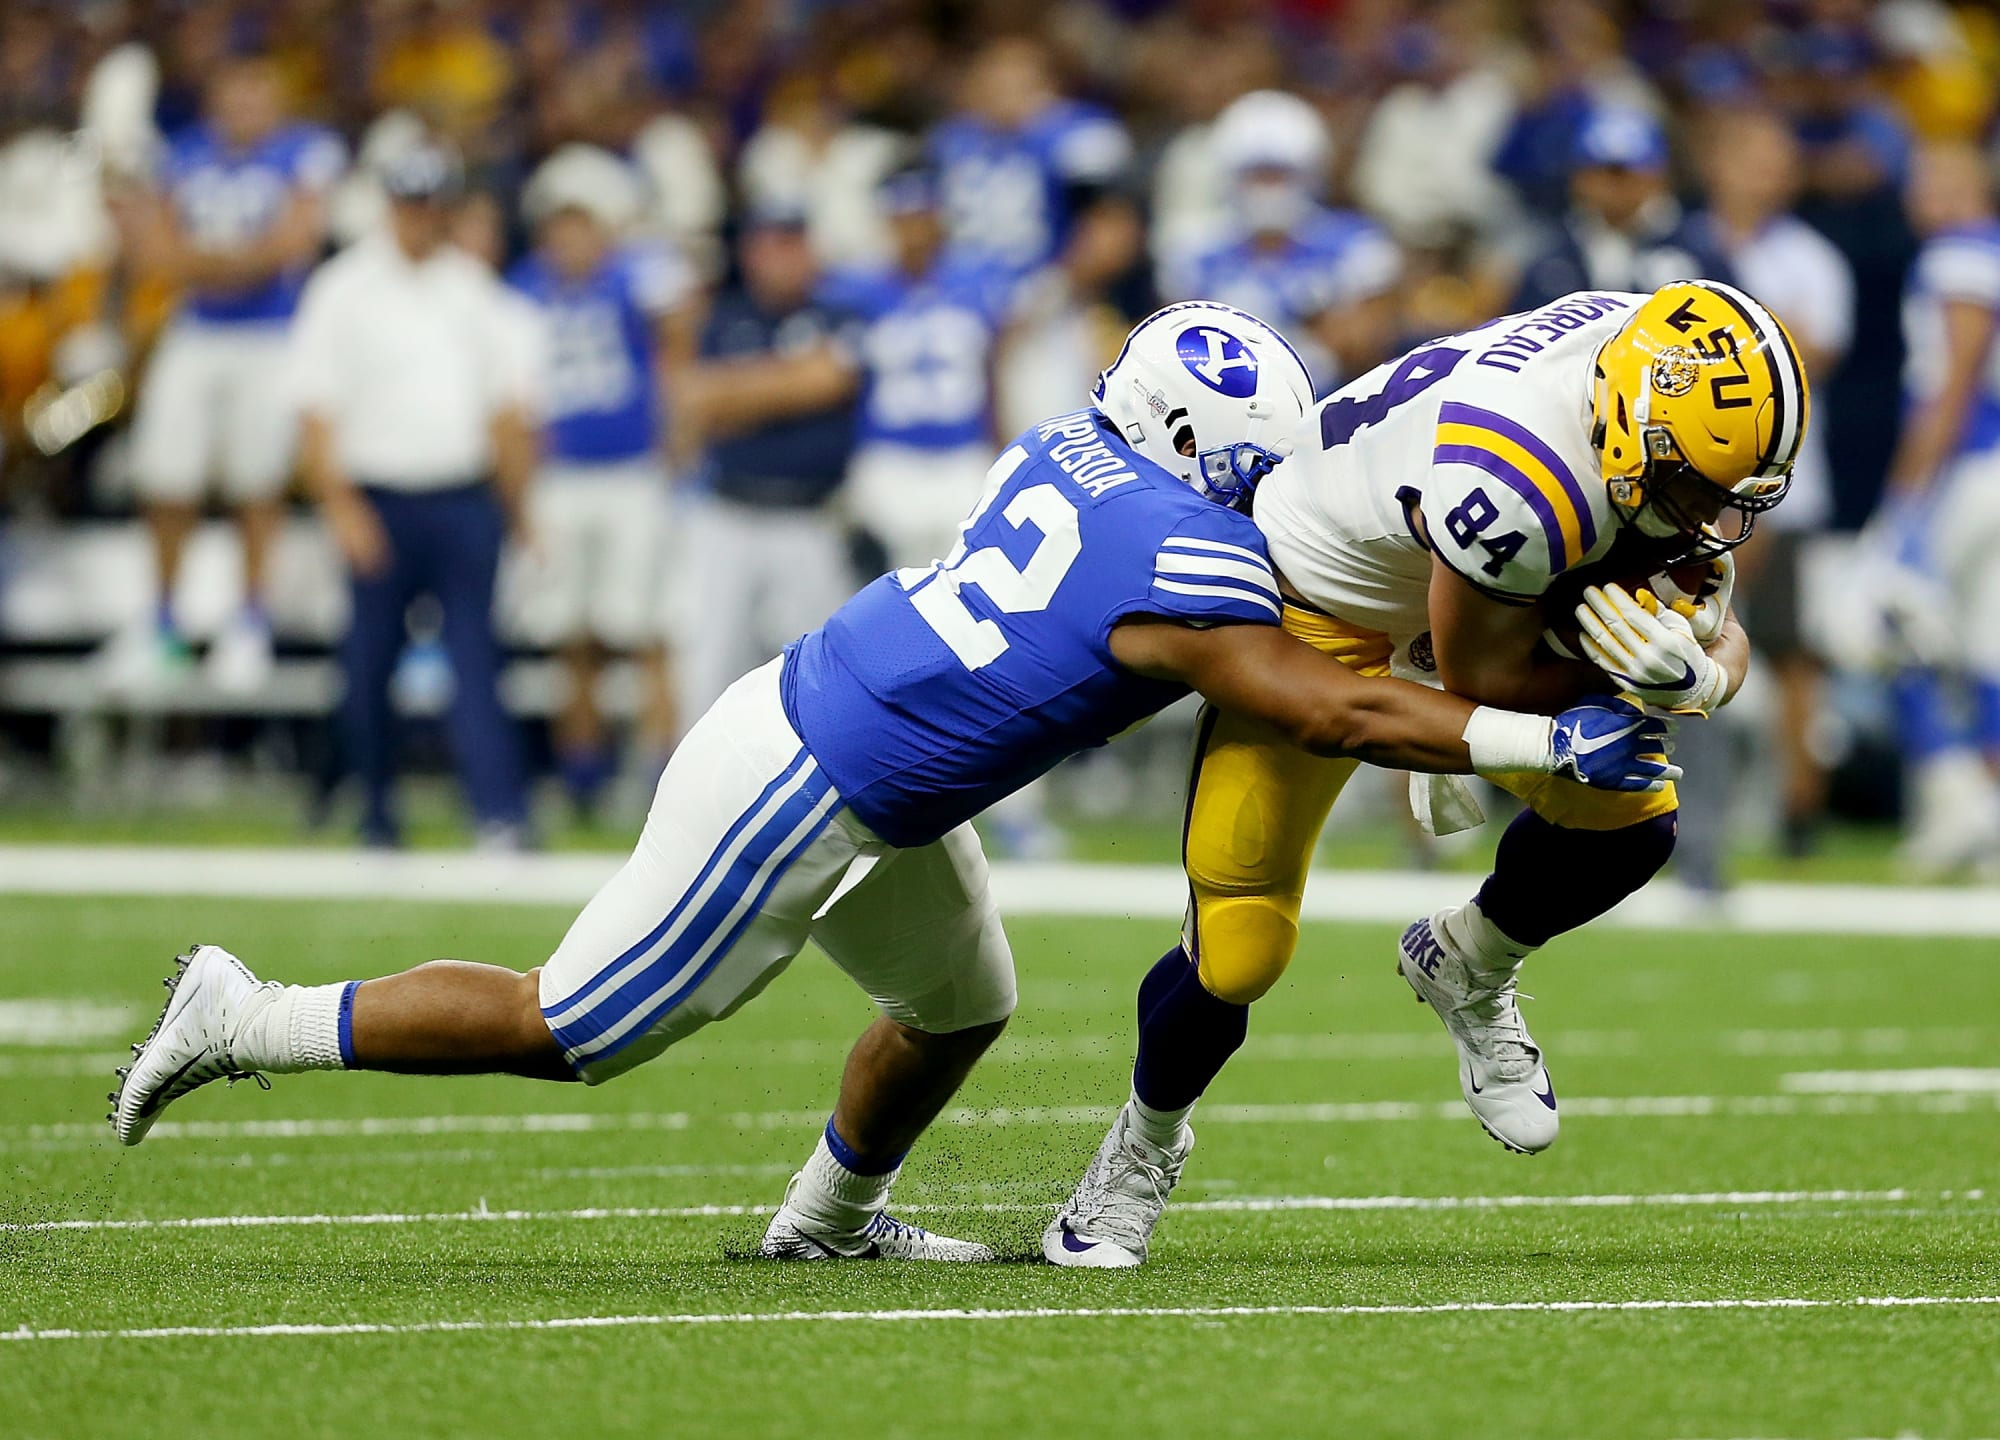 BYU football: Three things we learned from the LSU game